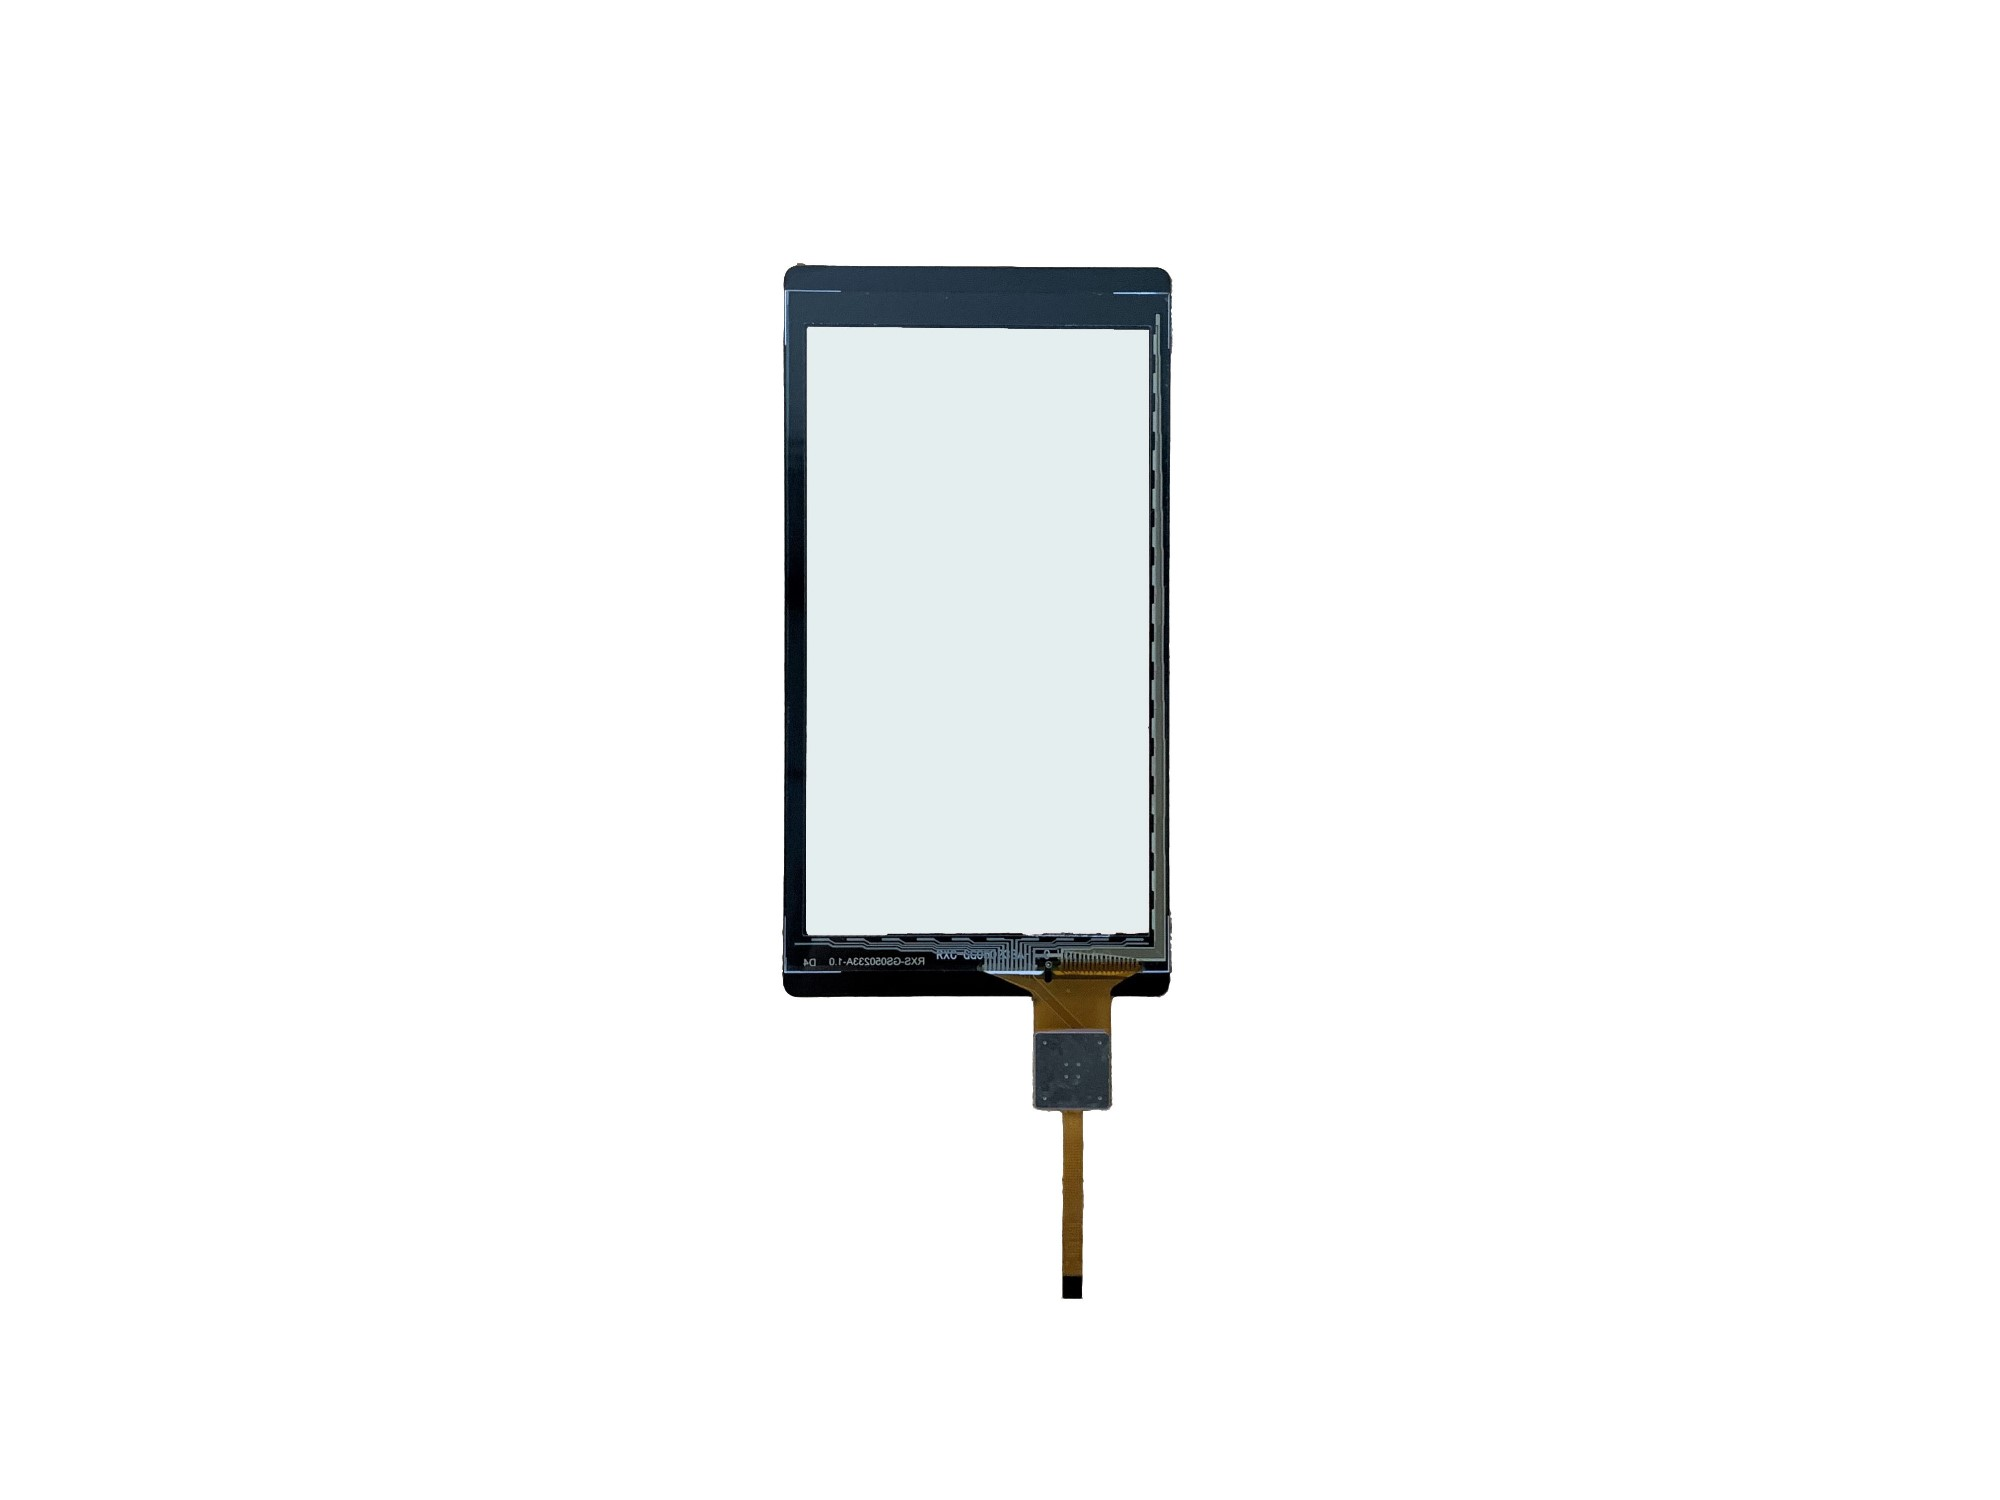 Custom China Order System Devices Gt911 5.0 Inch Pcap Touch Panels, Order System Devices Gt911 5.0 Inch Pcap Touch Panels Factory, Order System Devices Gt911 5.0 Inch Pcap Touch Panels OEM